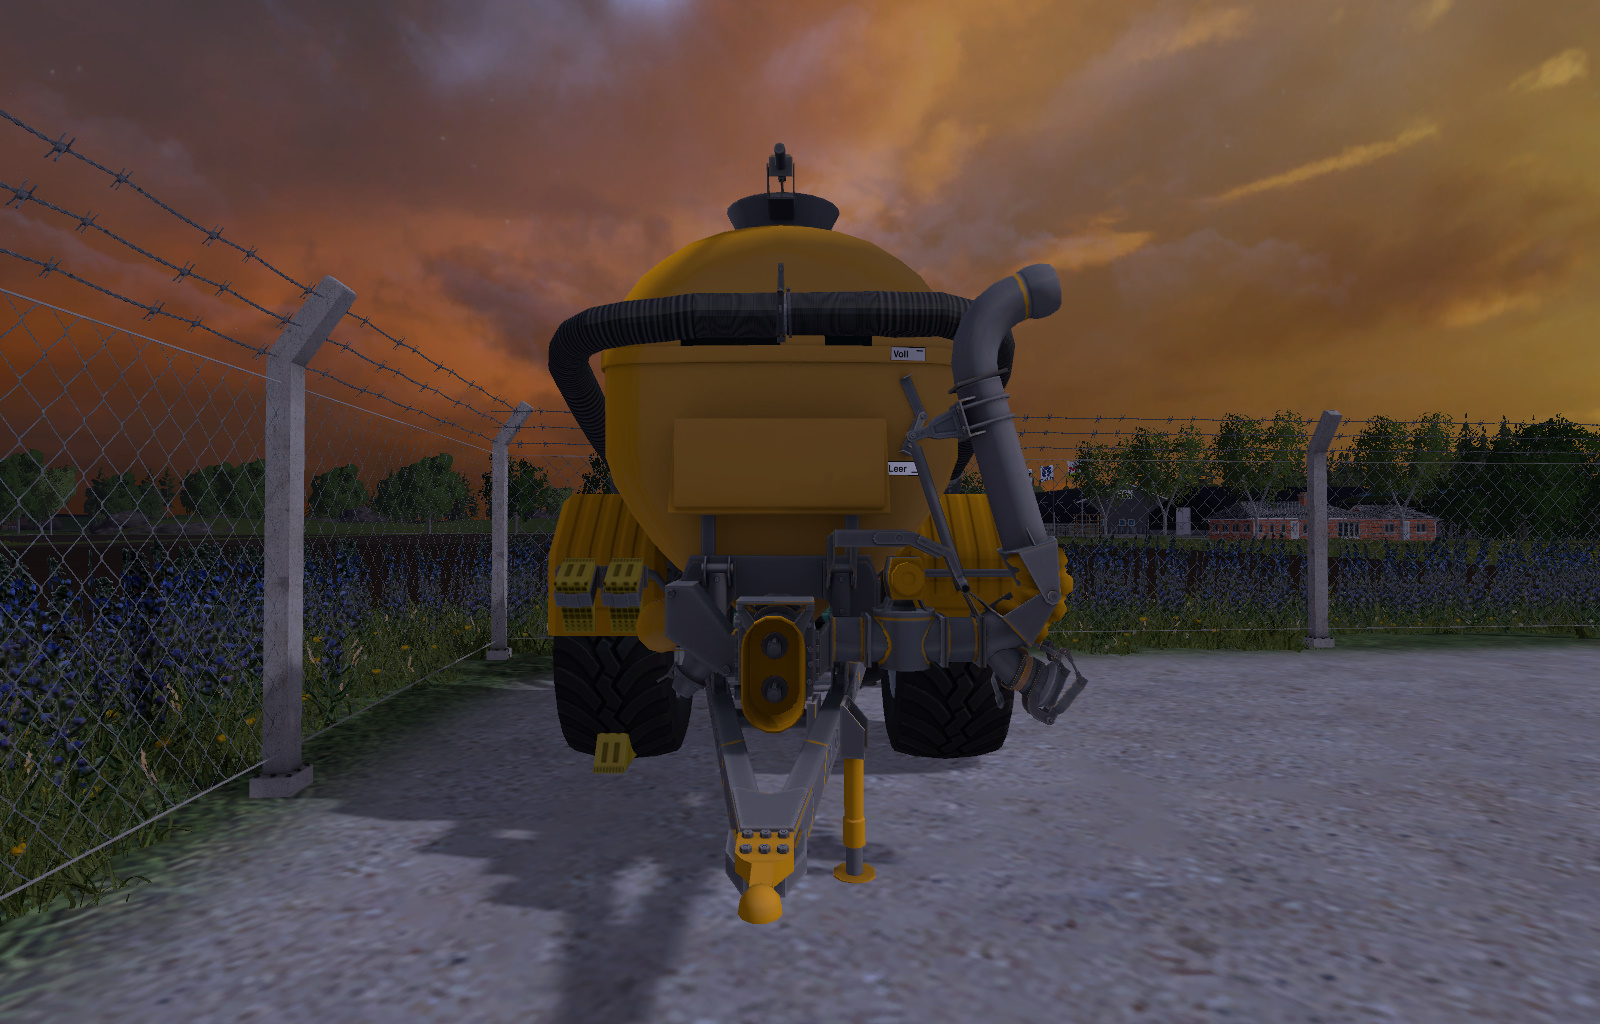 how to fill the slurry tanker on farm simulator